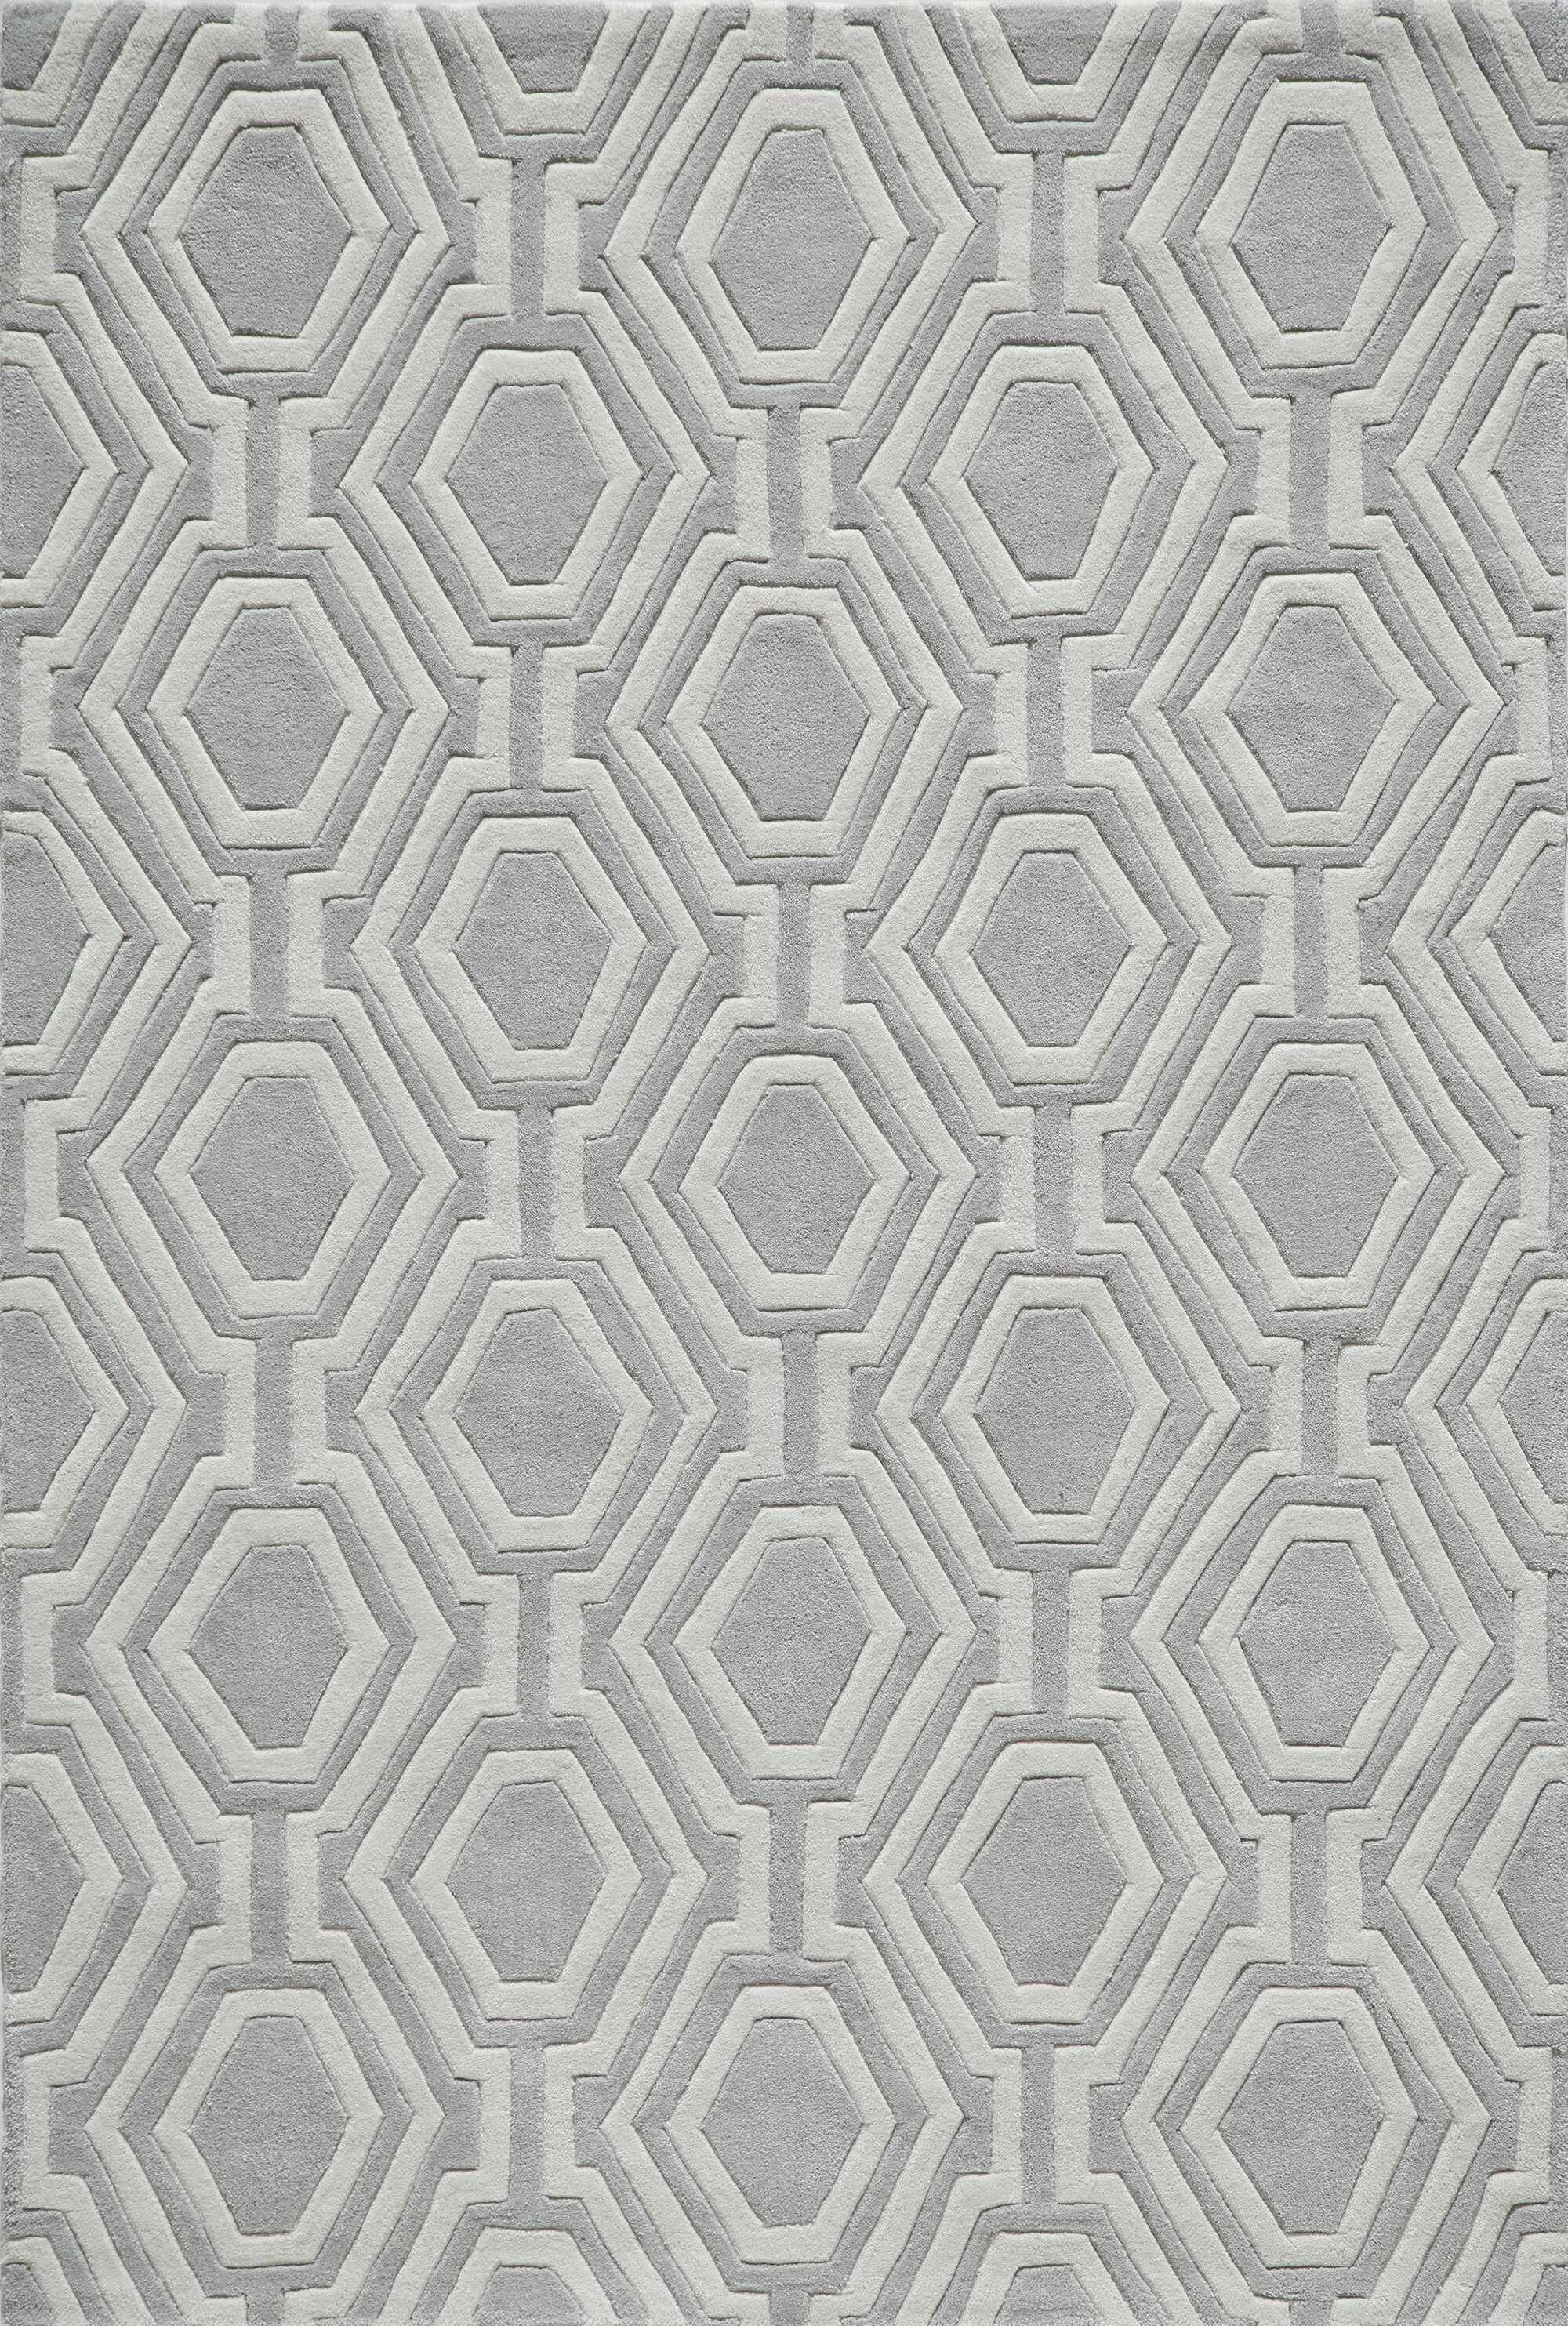 Wills Hand-Tufted Gray Area Rug Rug Size: Rectangle 5' x 7'6